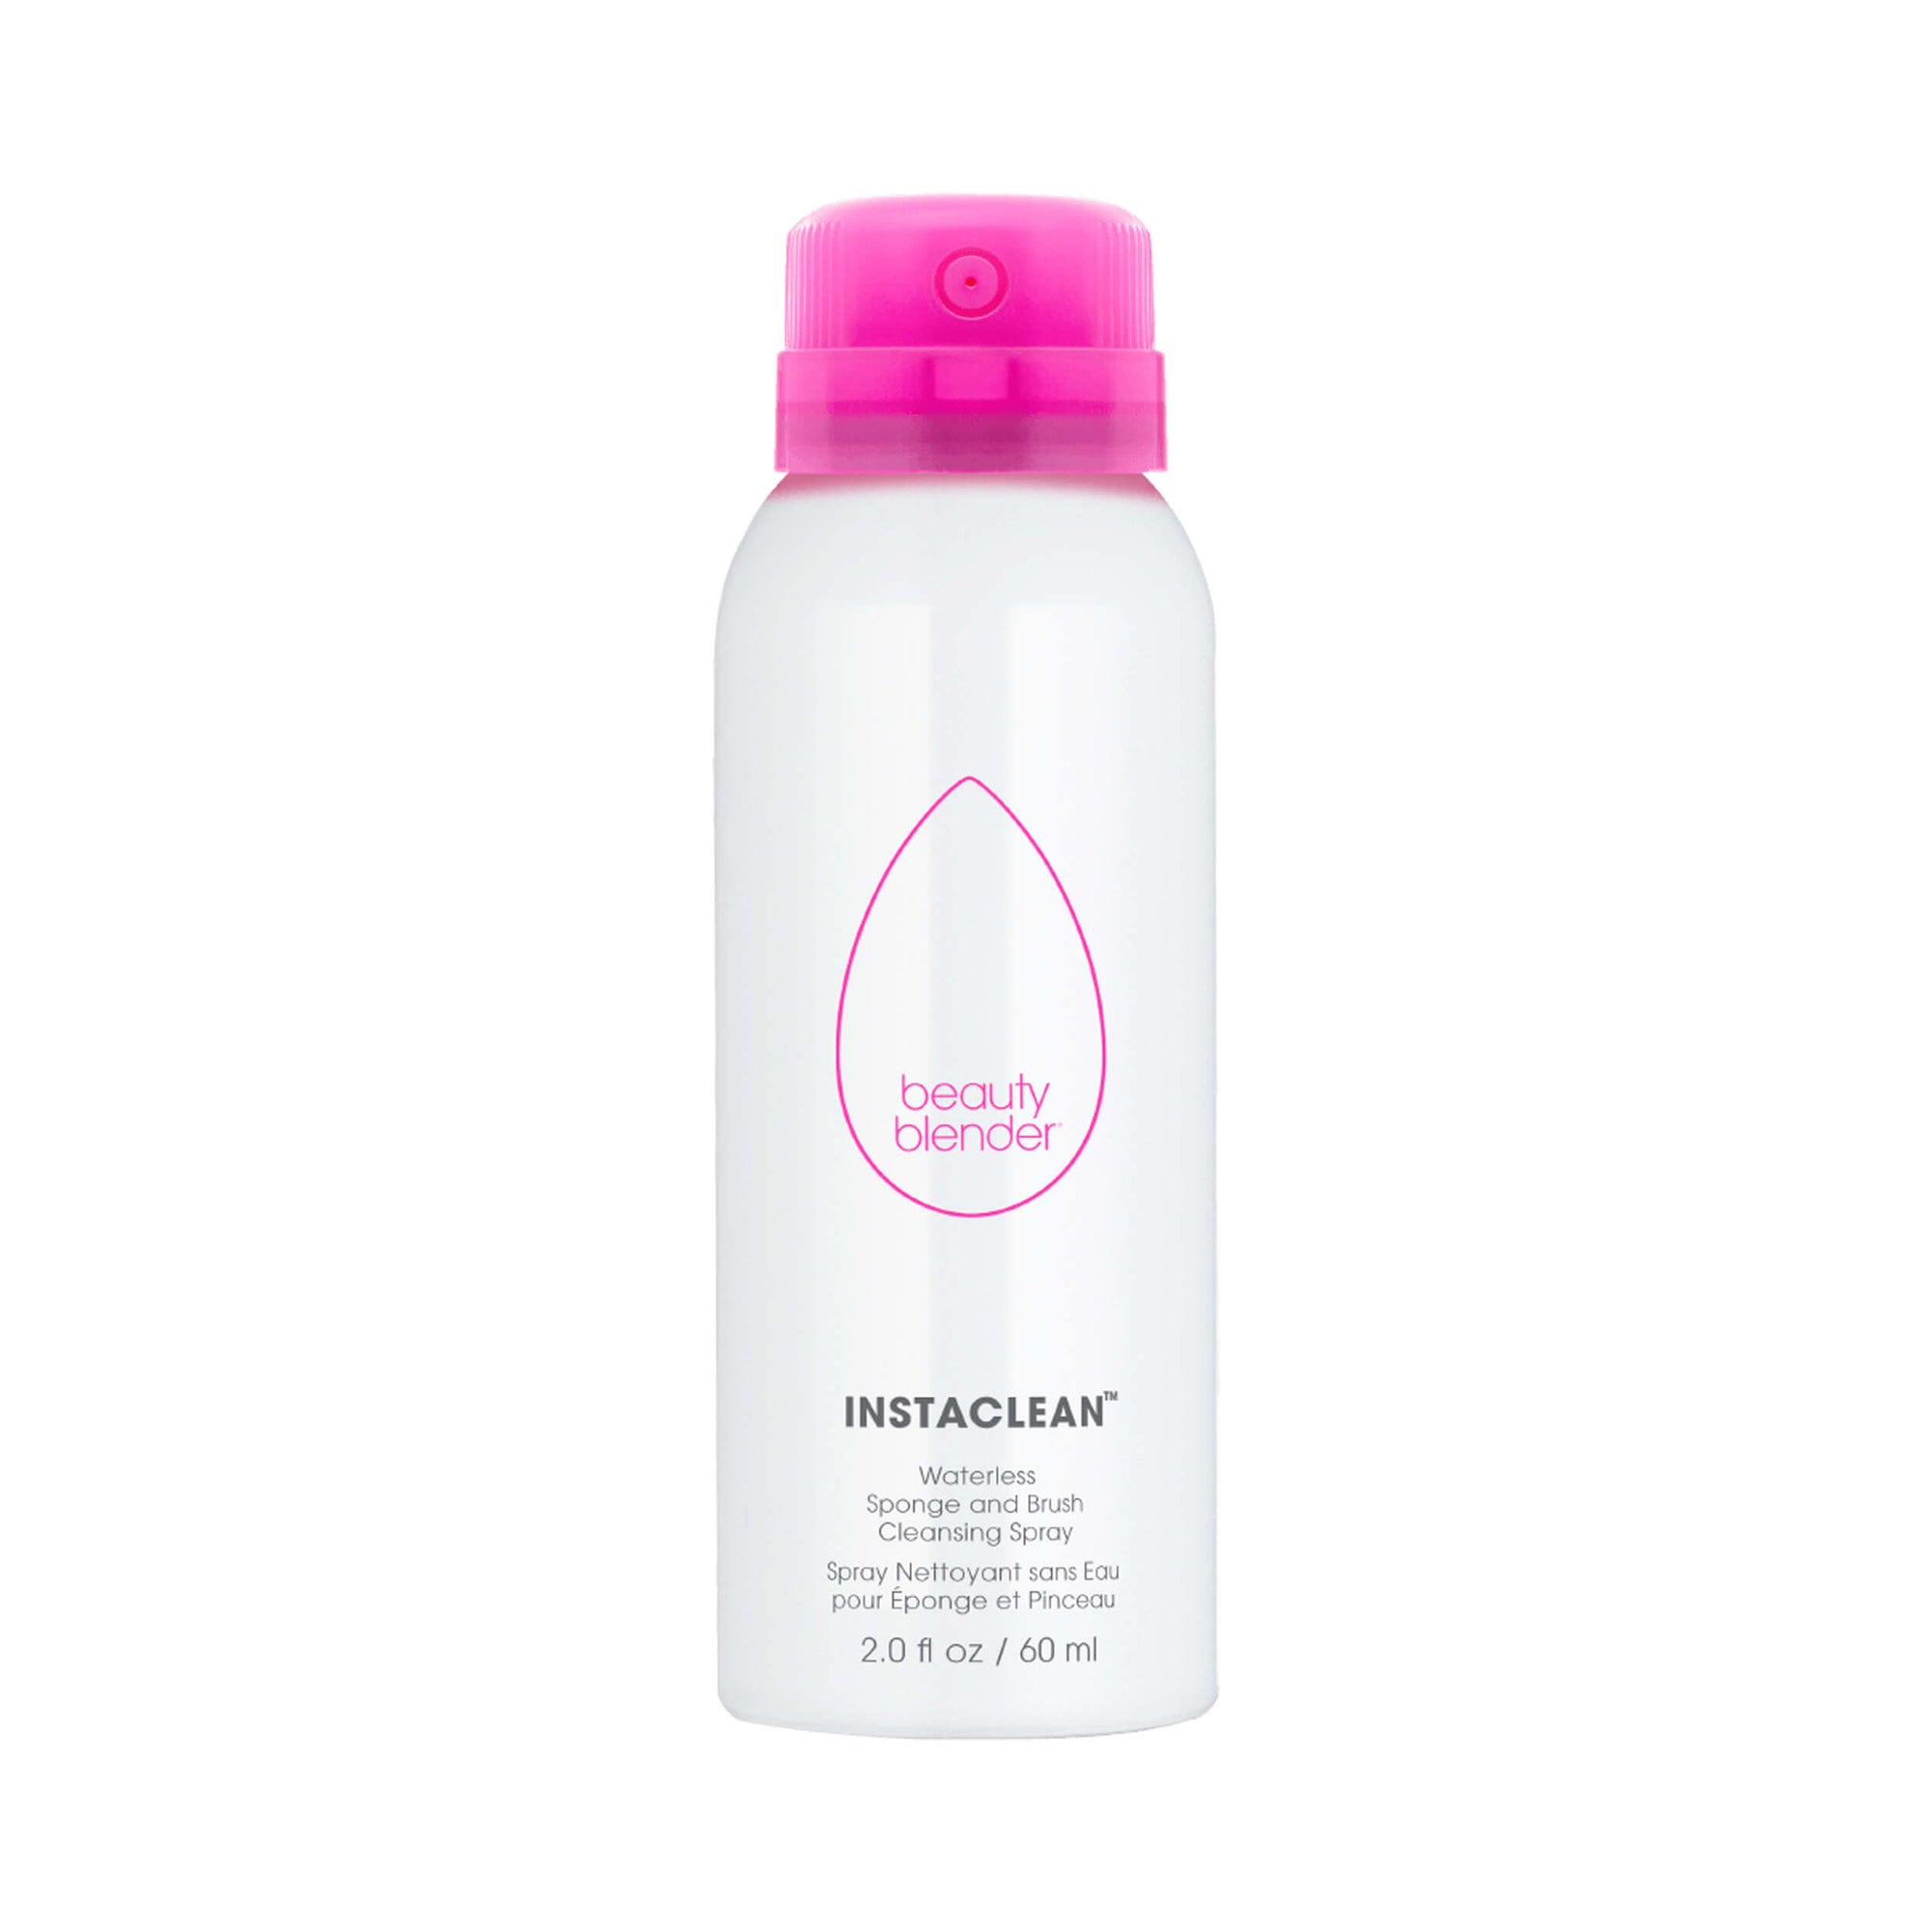 Beautyblender Instaclean Cleansing Spray